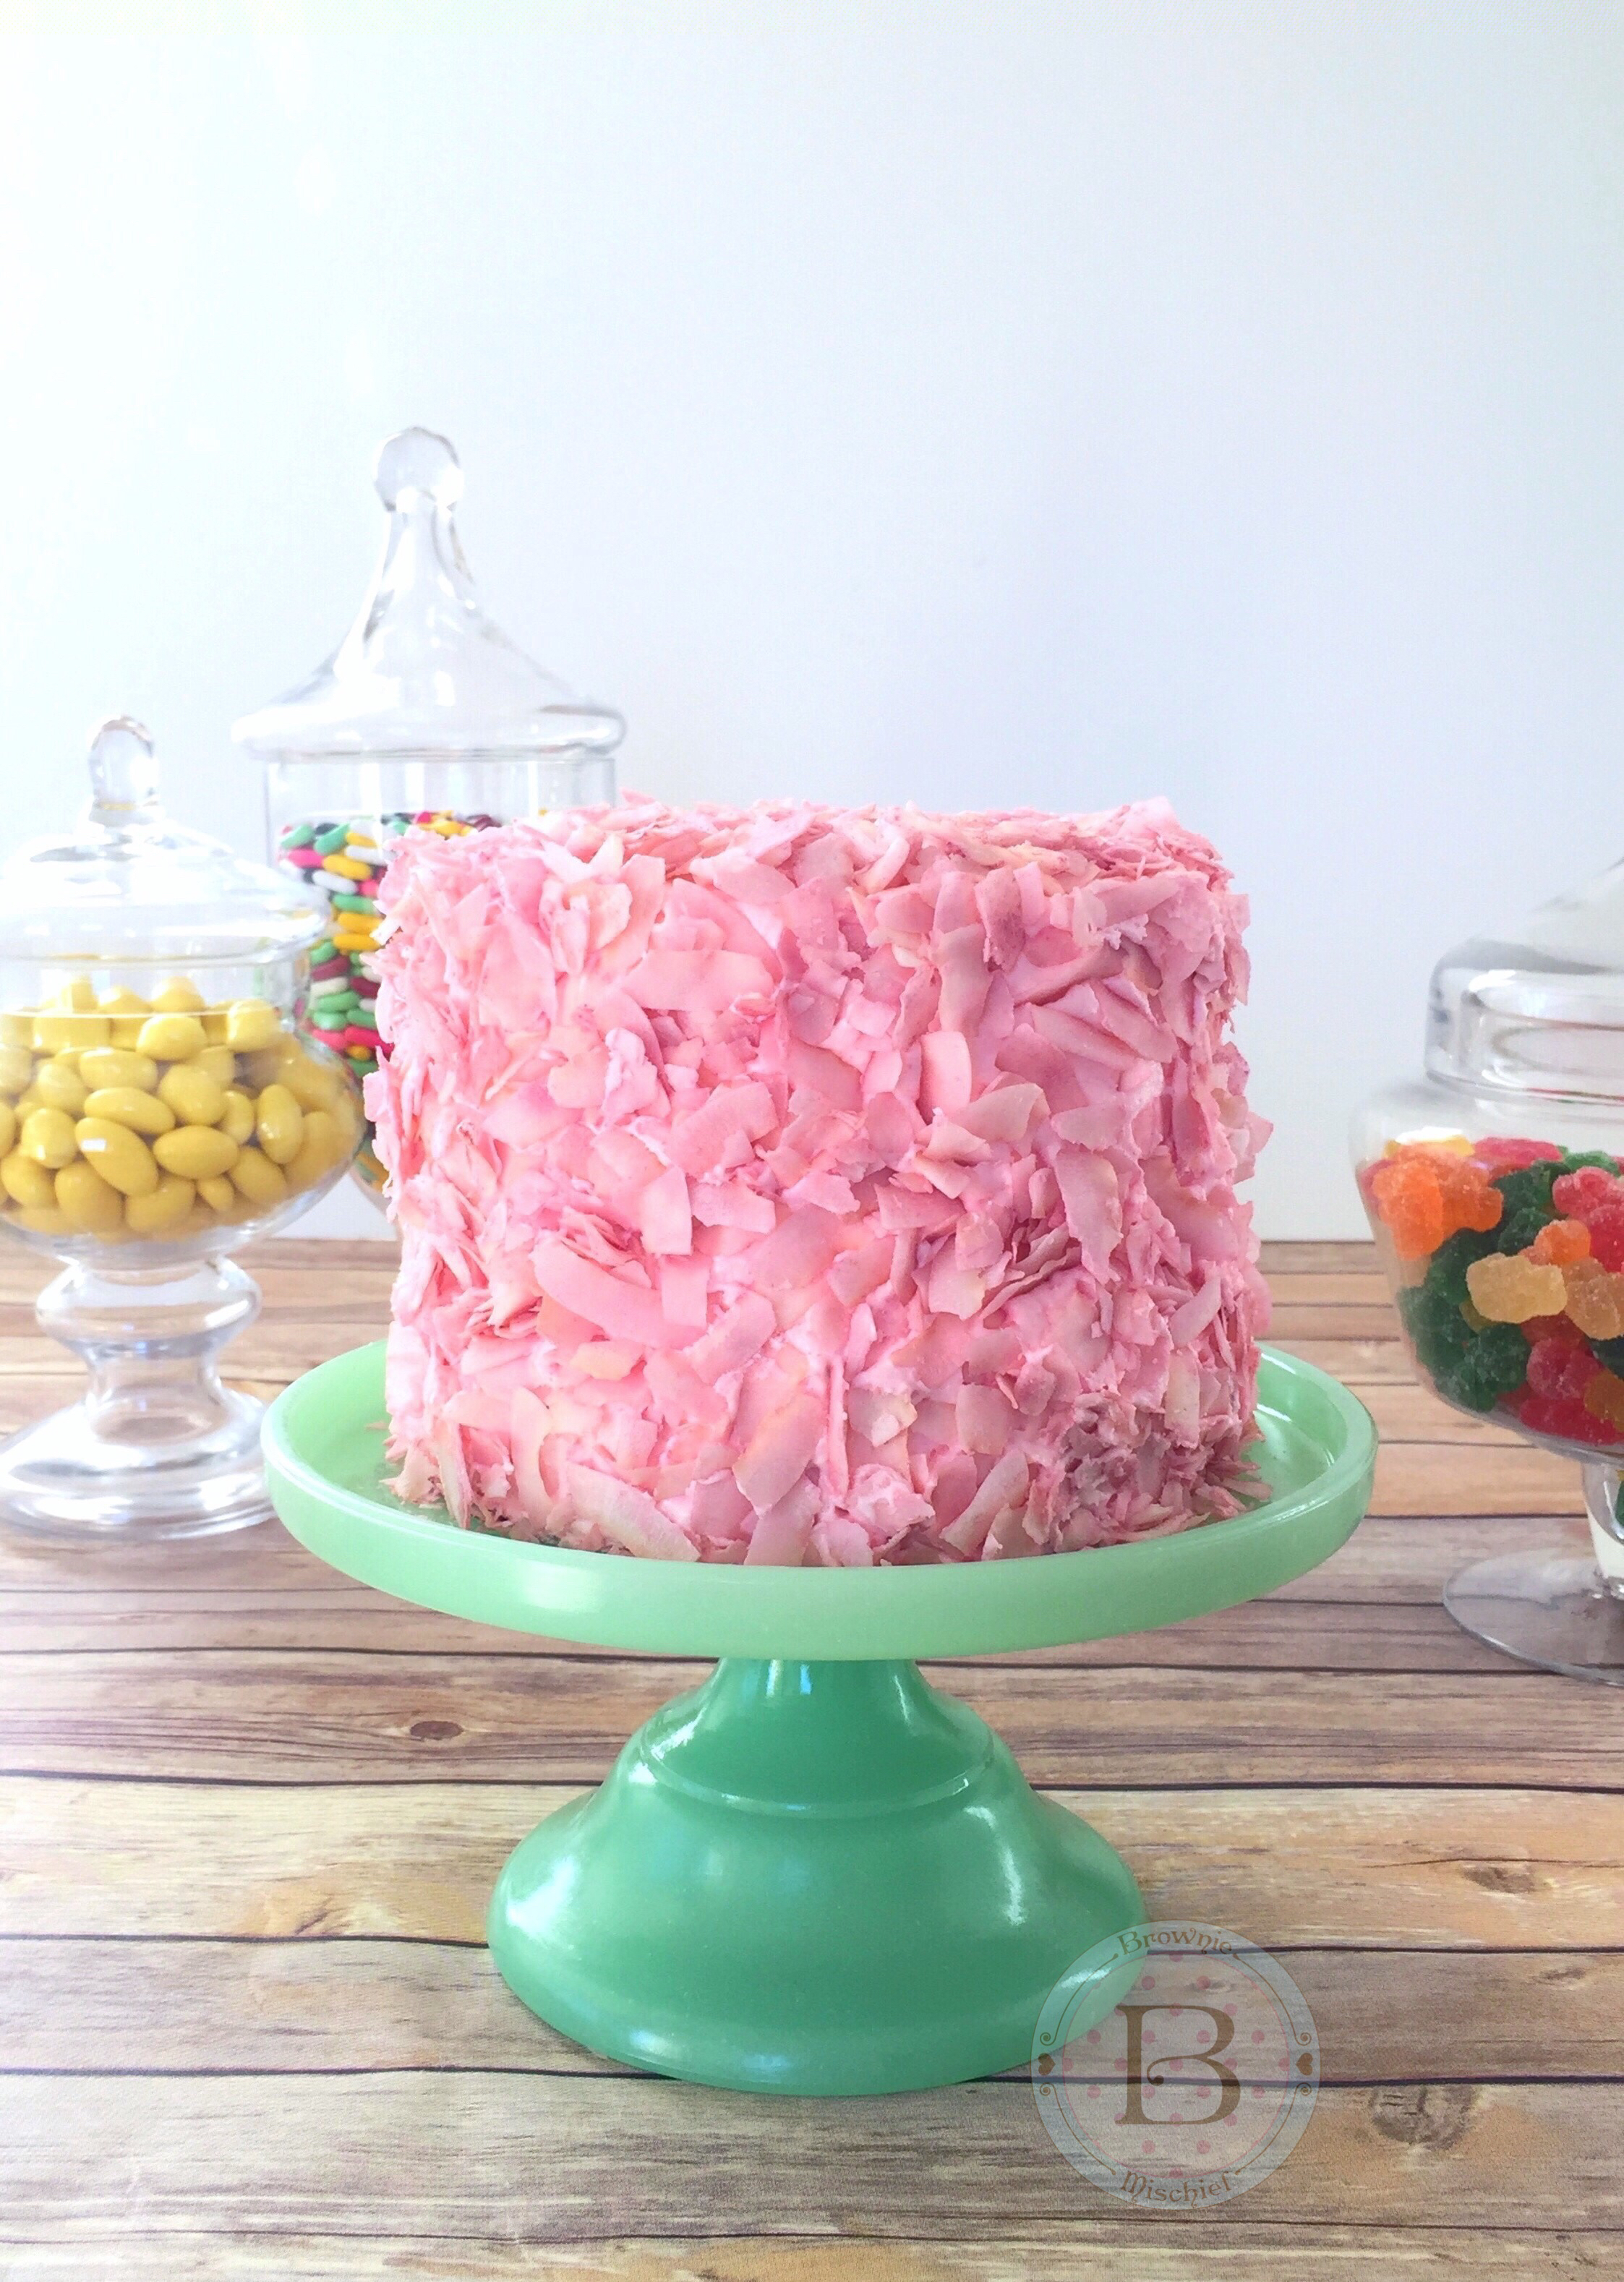 Honeydukes Inspired Pink Coconut Ice Cake by Brownie Mischief